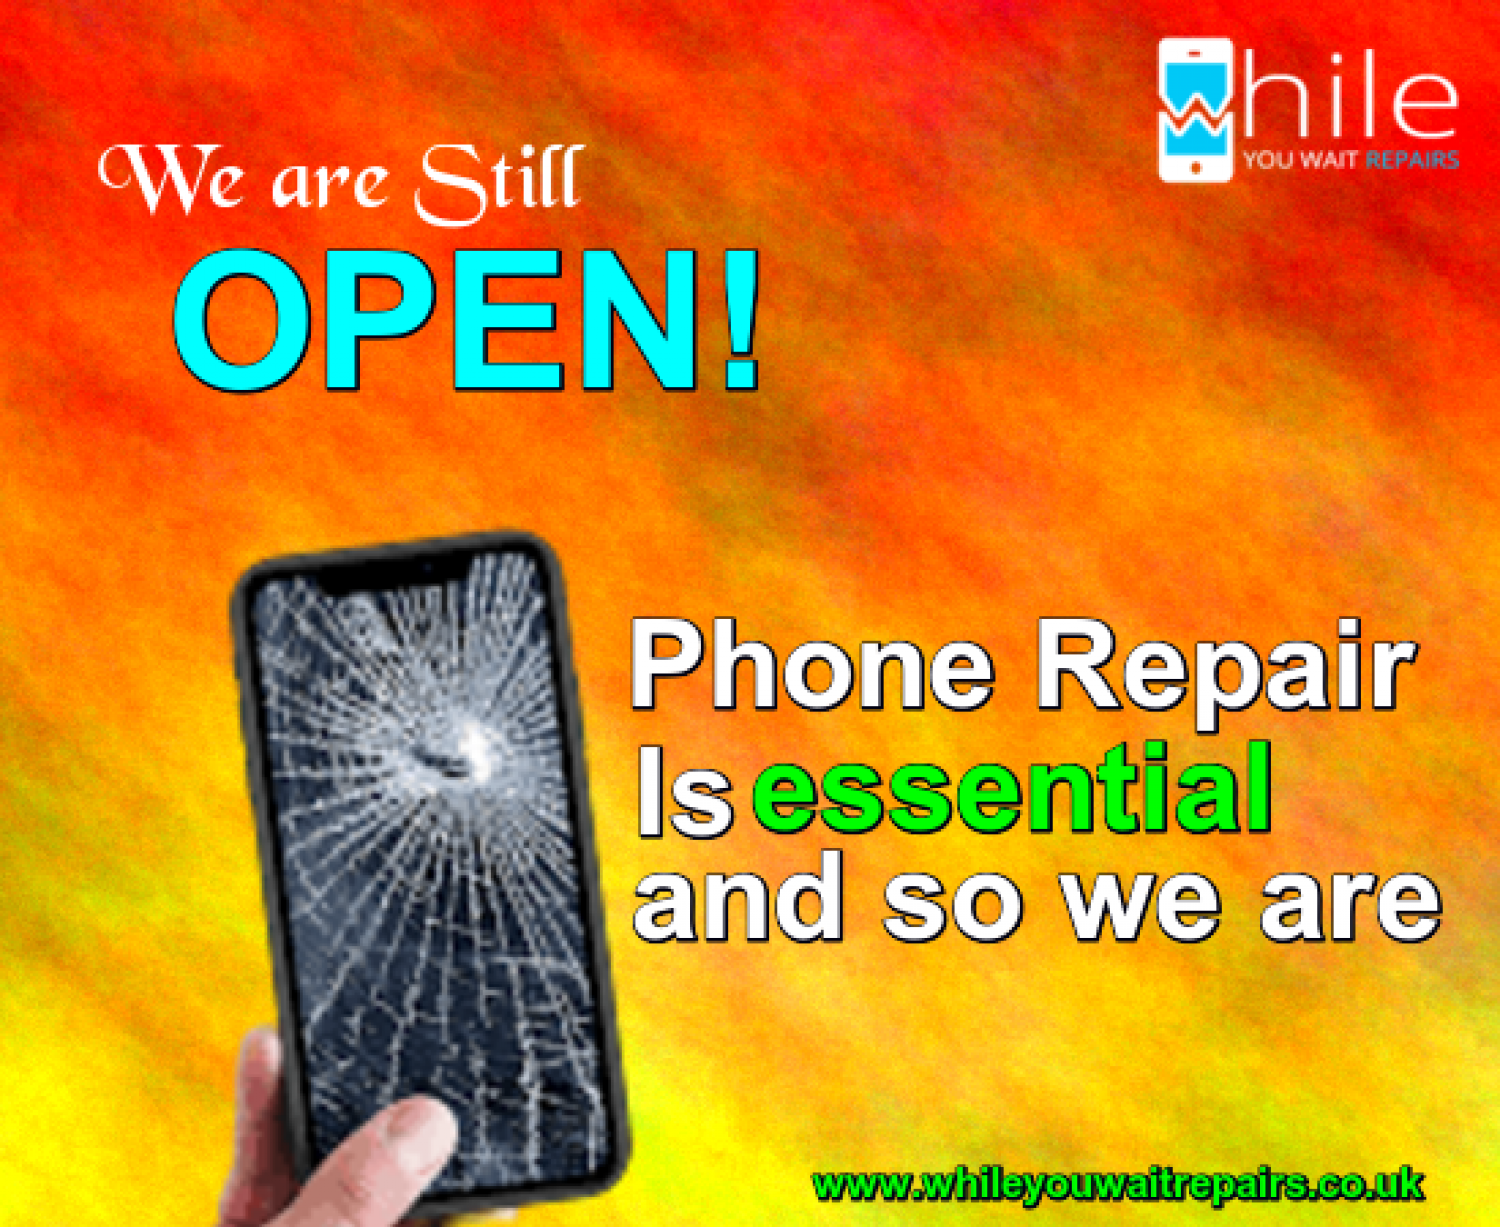 Same Day Mobile Phone Repair Service London Infographic